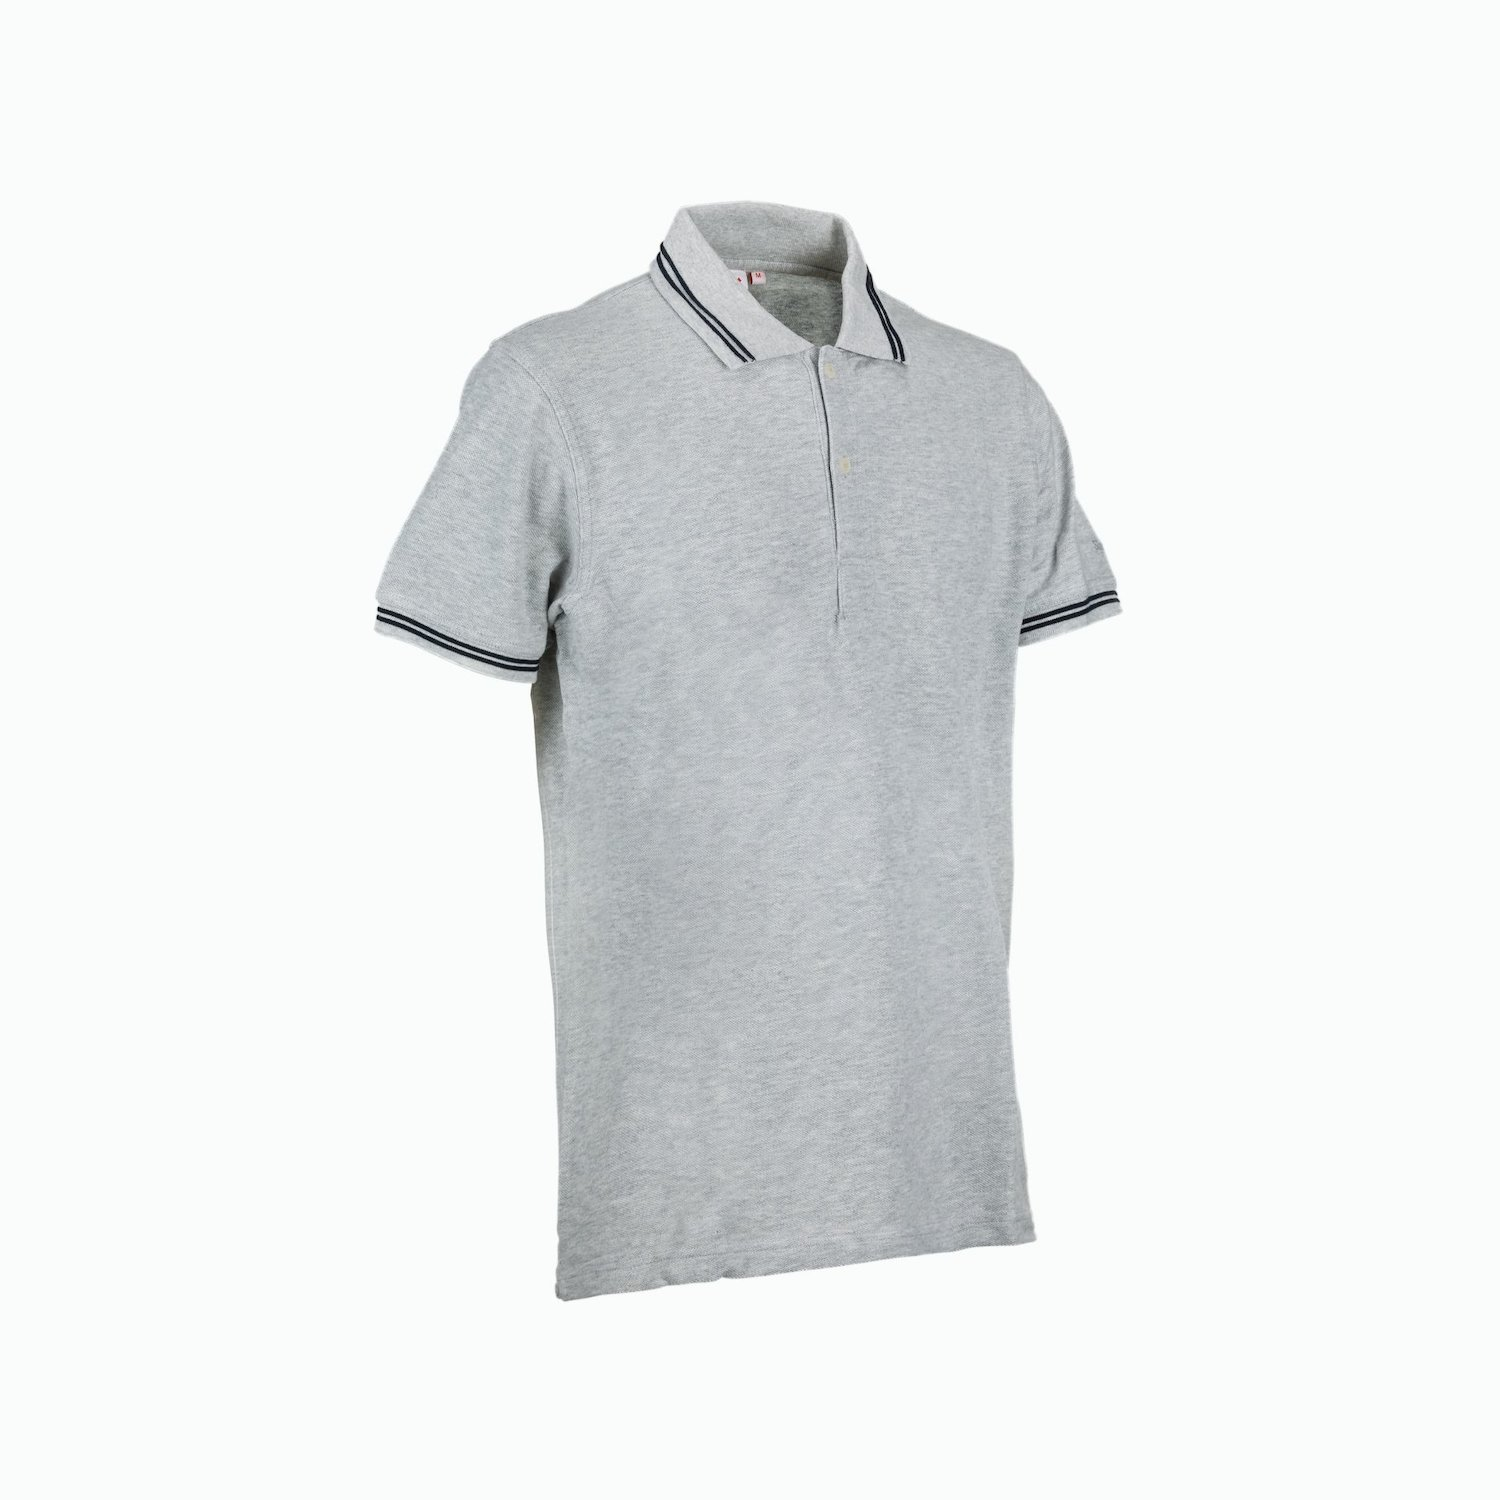 Polo regata new ss - Grau